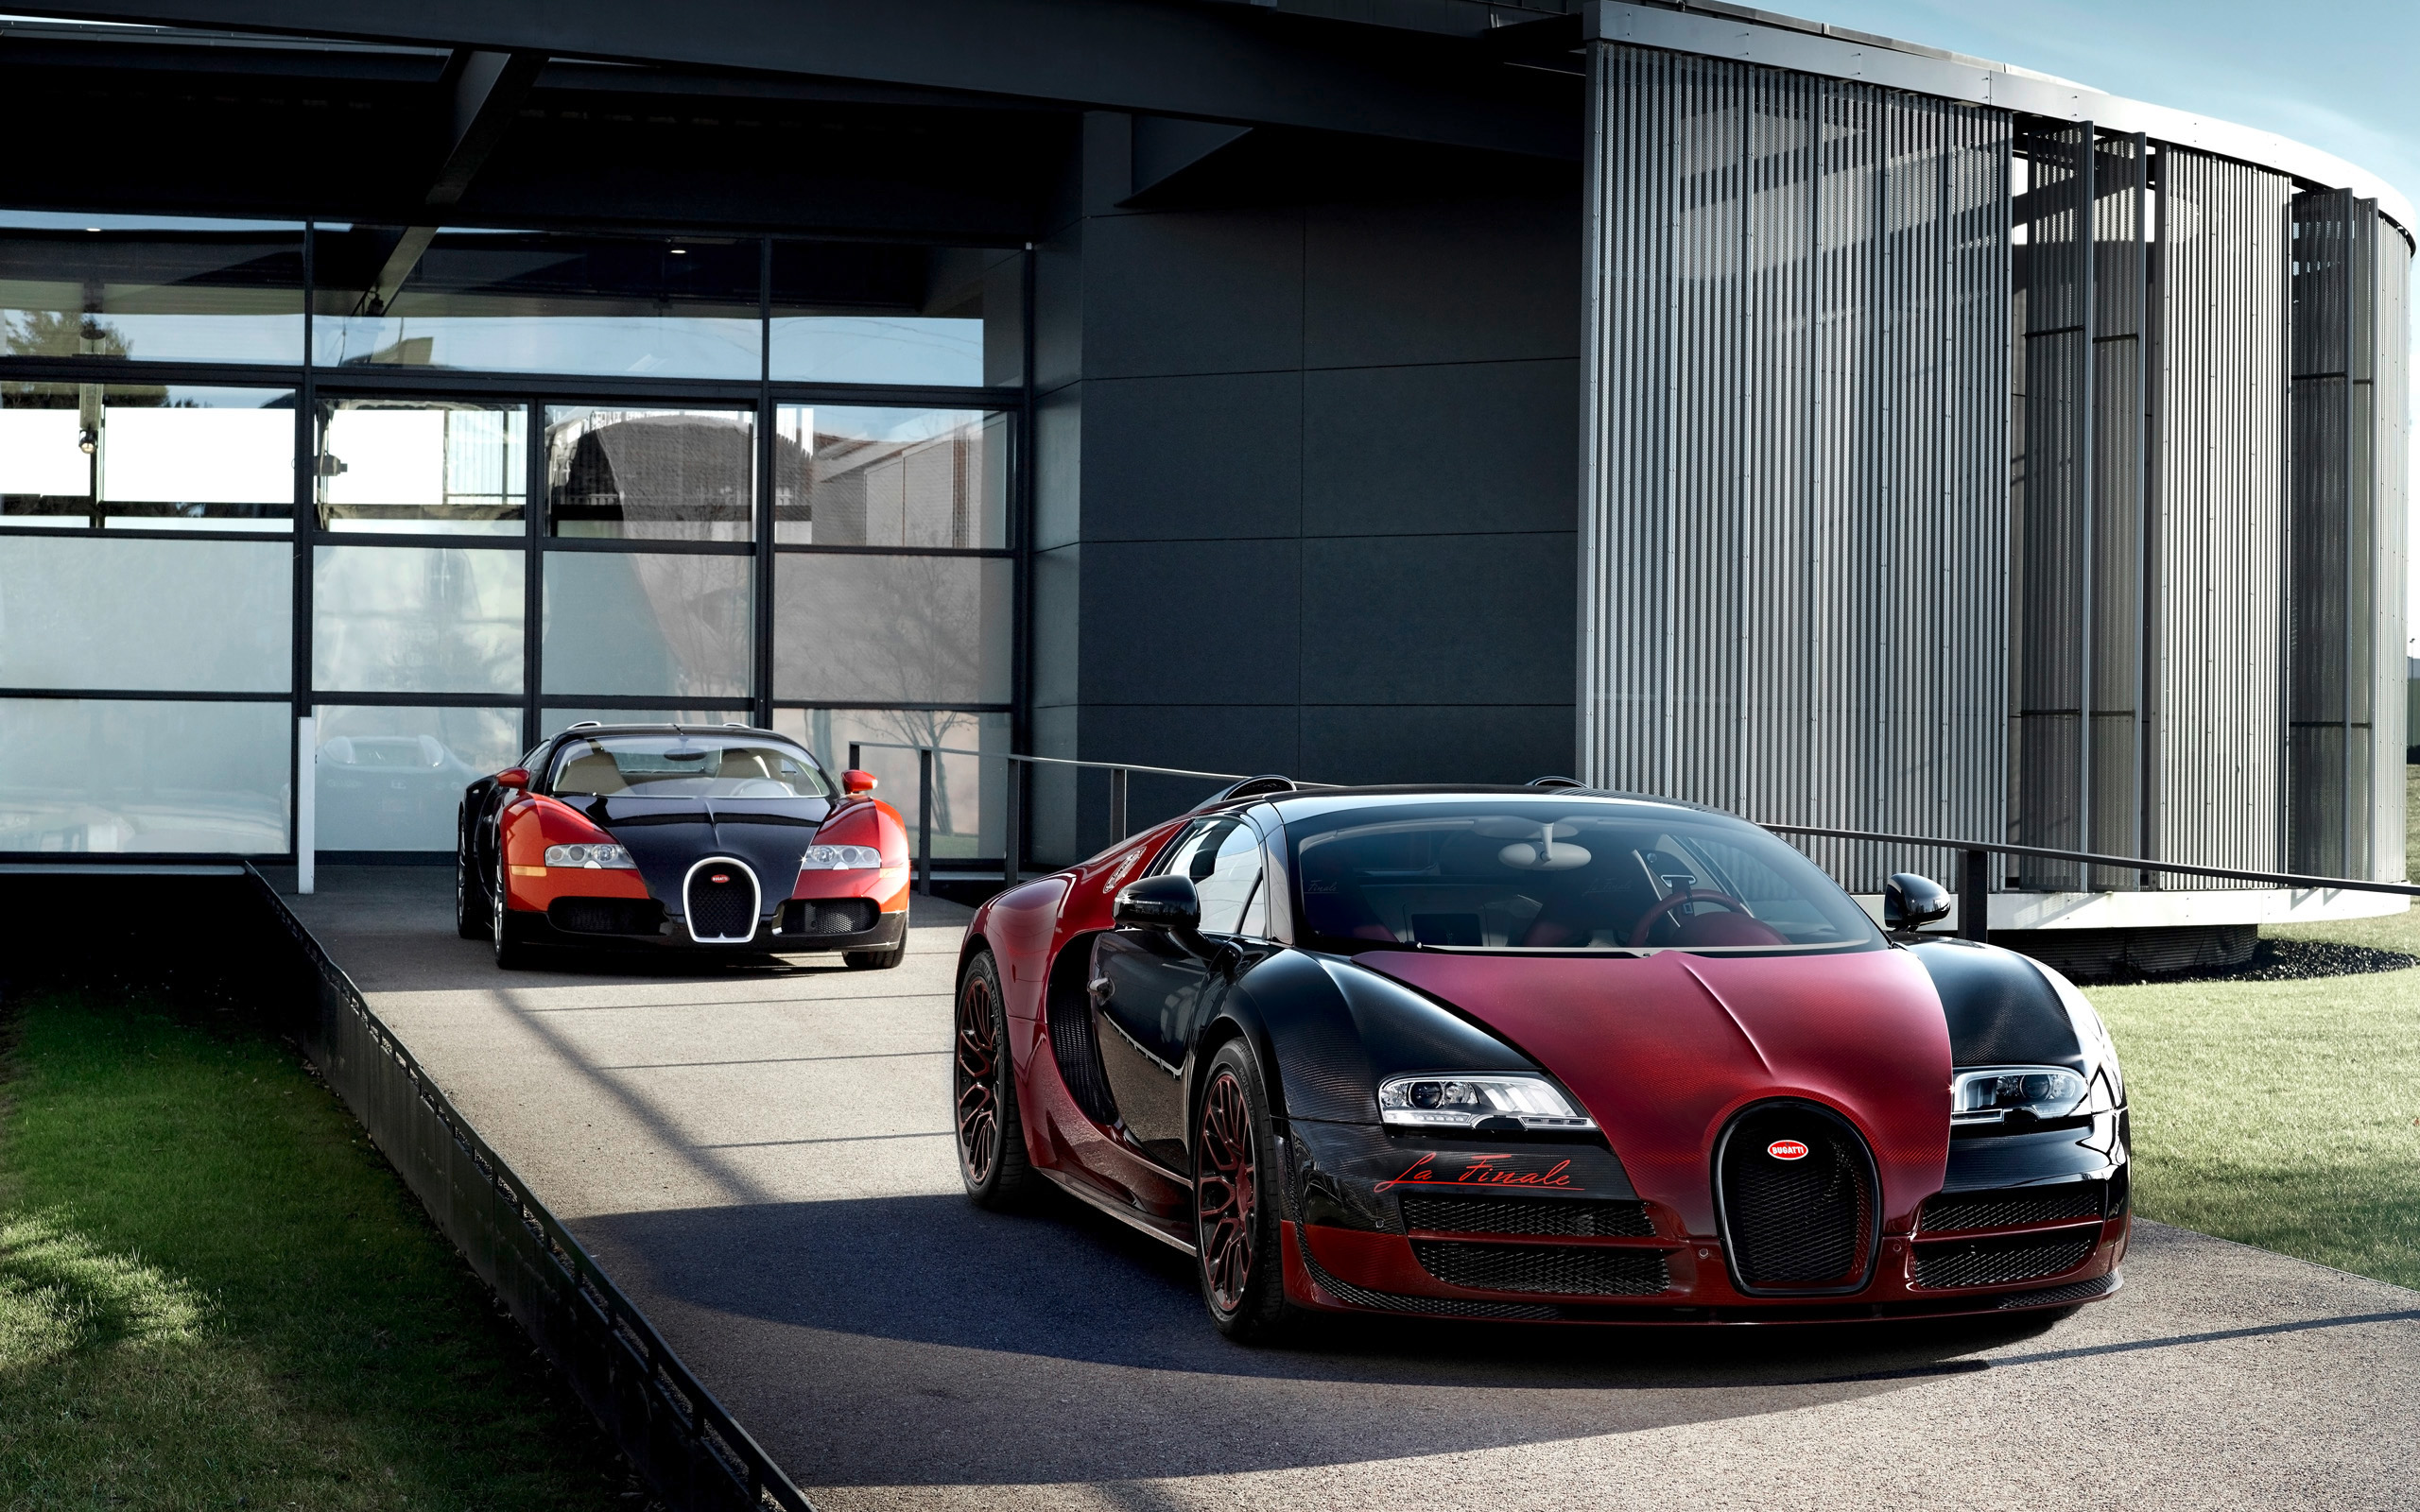 2015 bugatti veyron grand sport vitesse la finale wallpaper | hd car